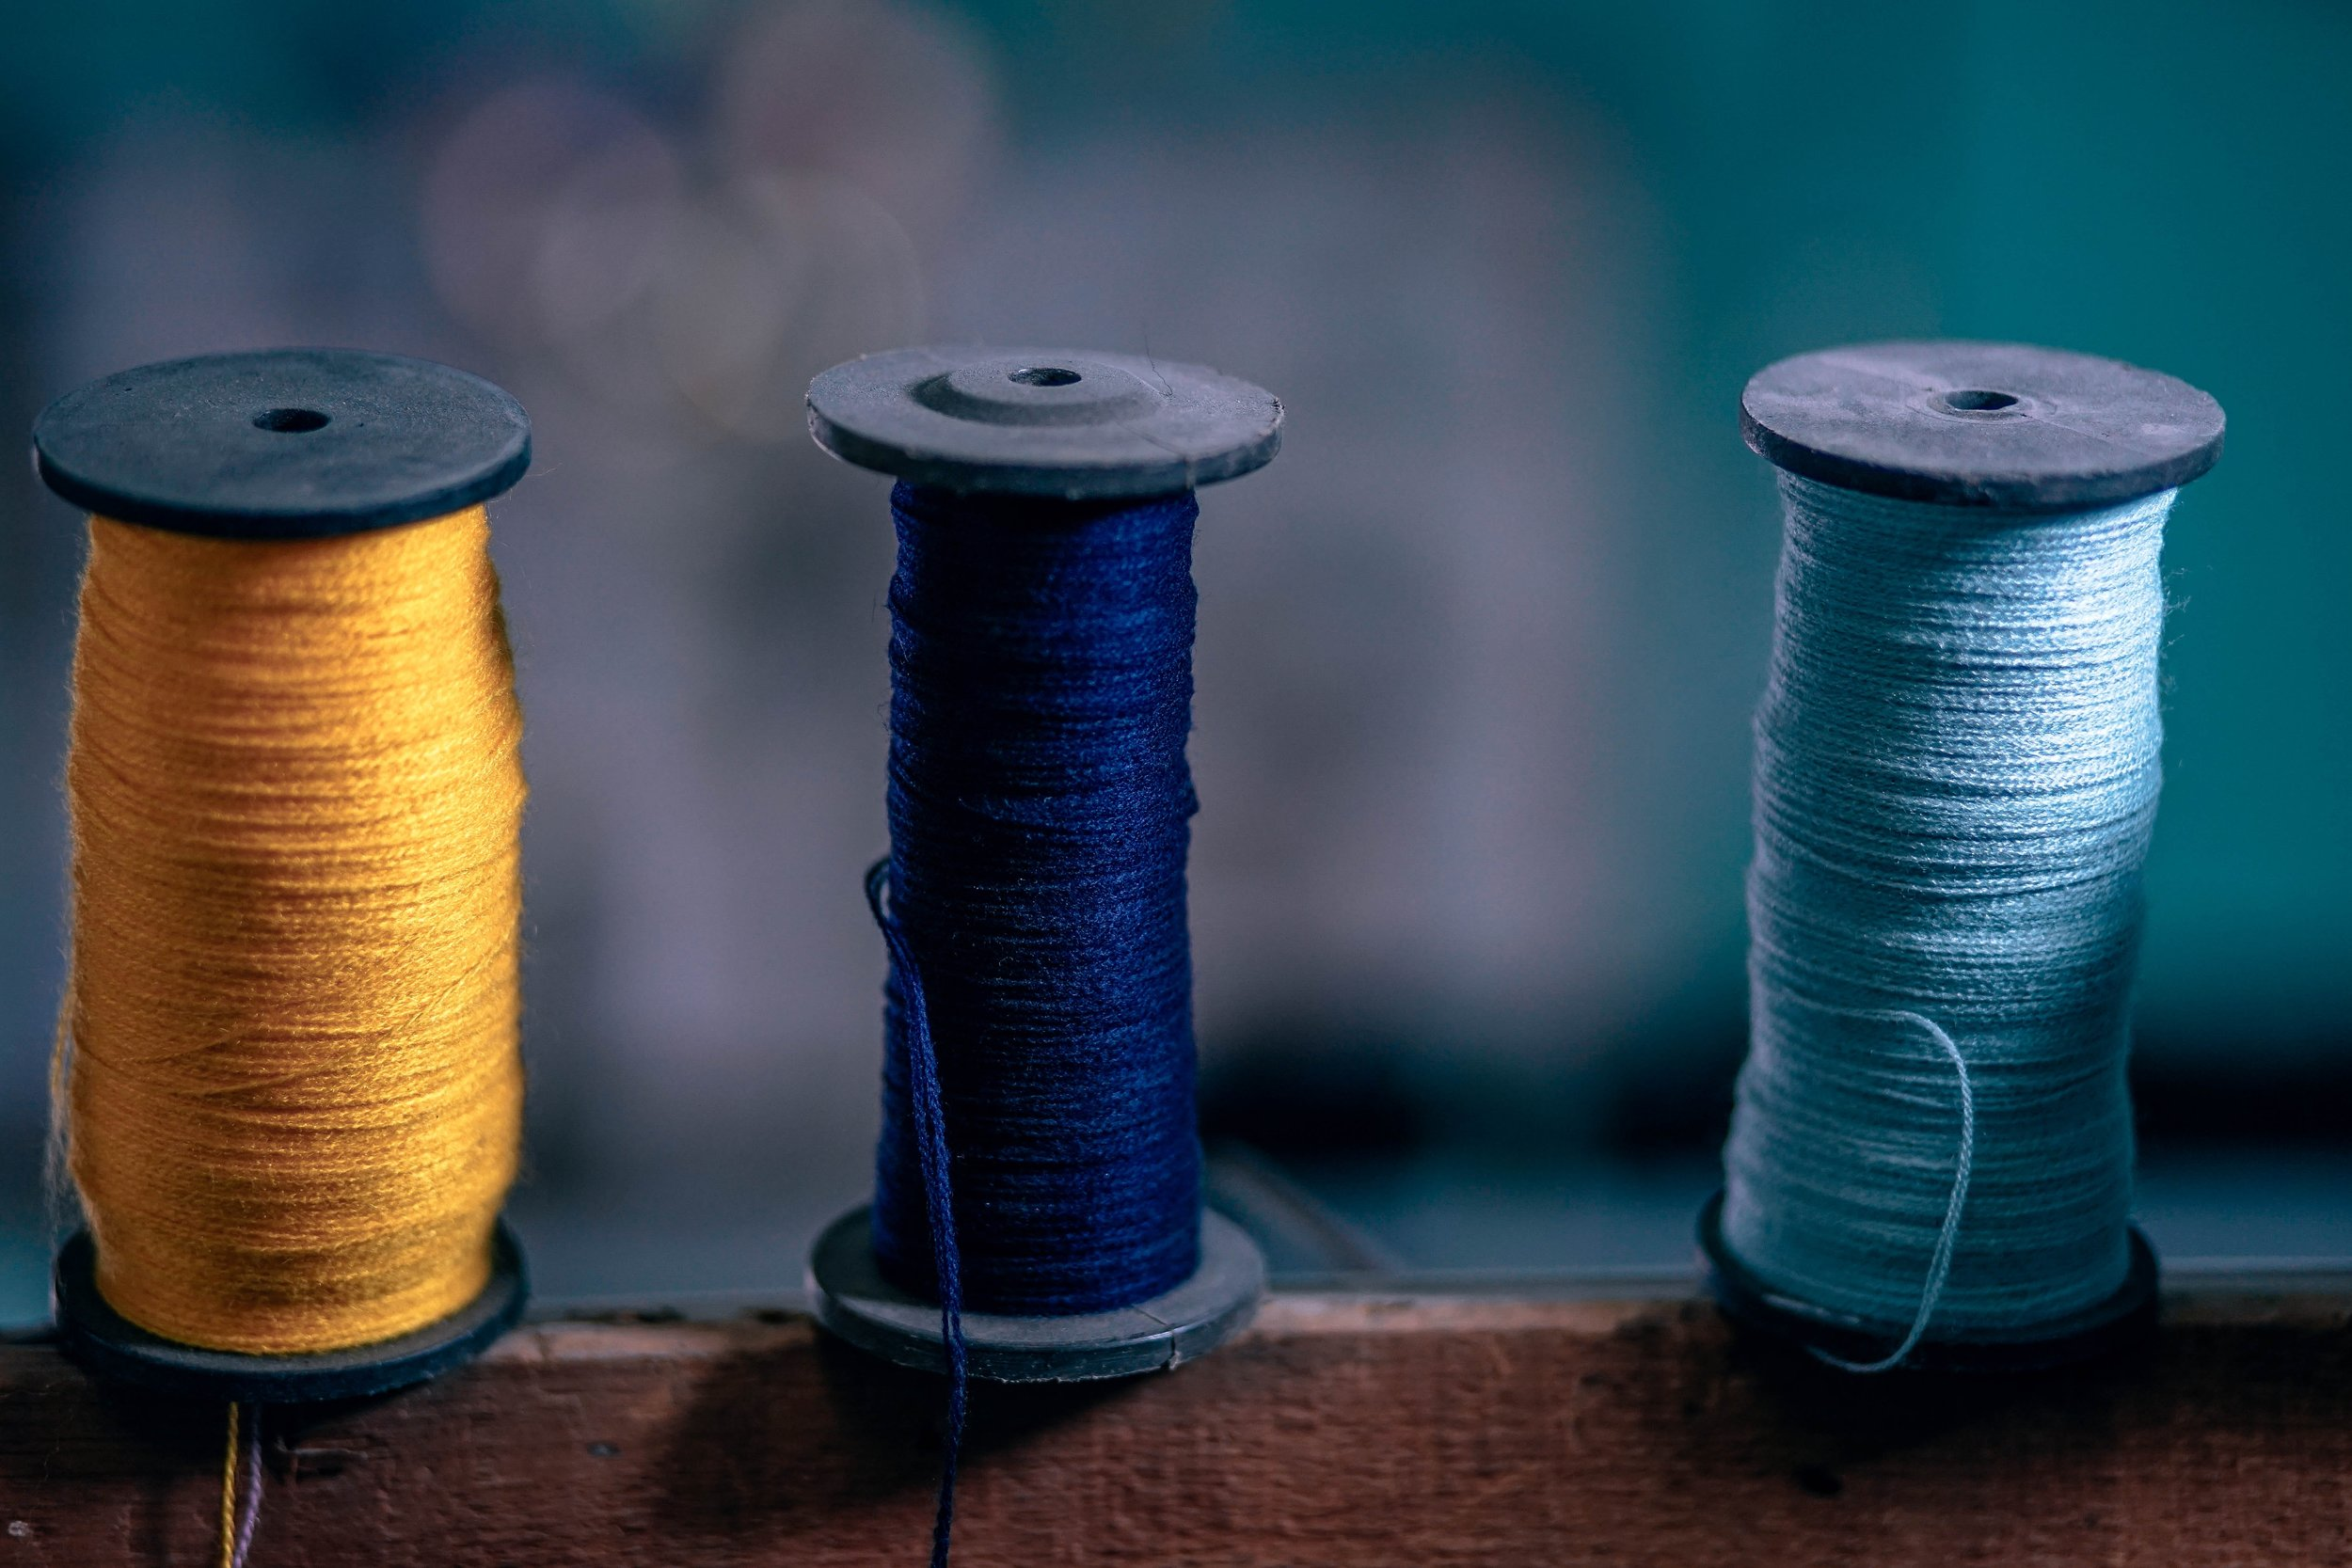 CBA 1:Creative Textiles - The teacher's judgement is recorded for the purpose of subject learning and assessment review, and for the school's reporting to parents and students.